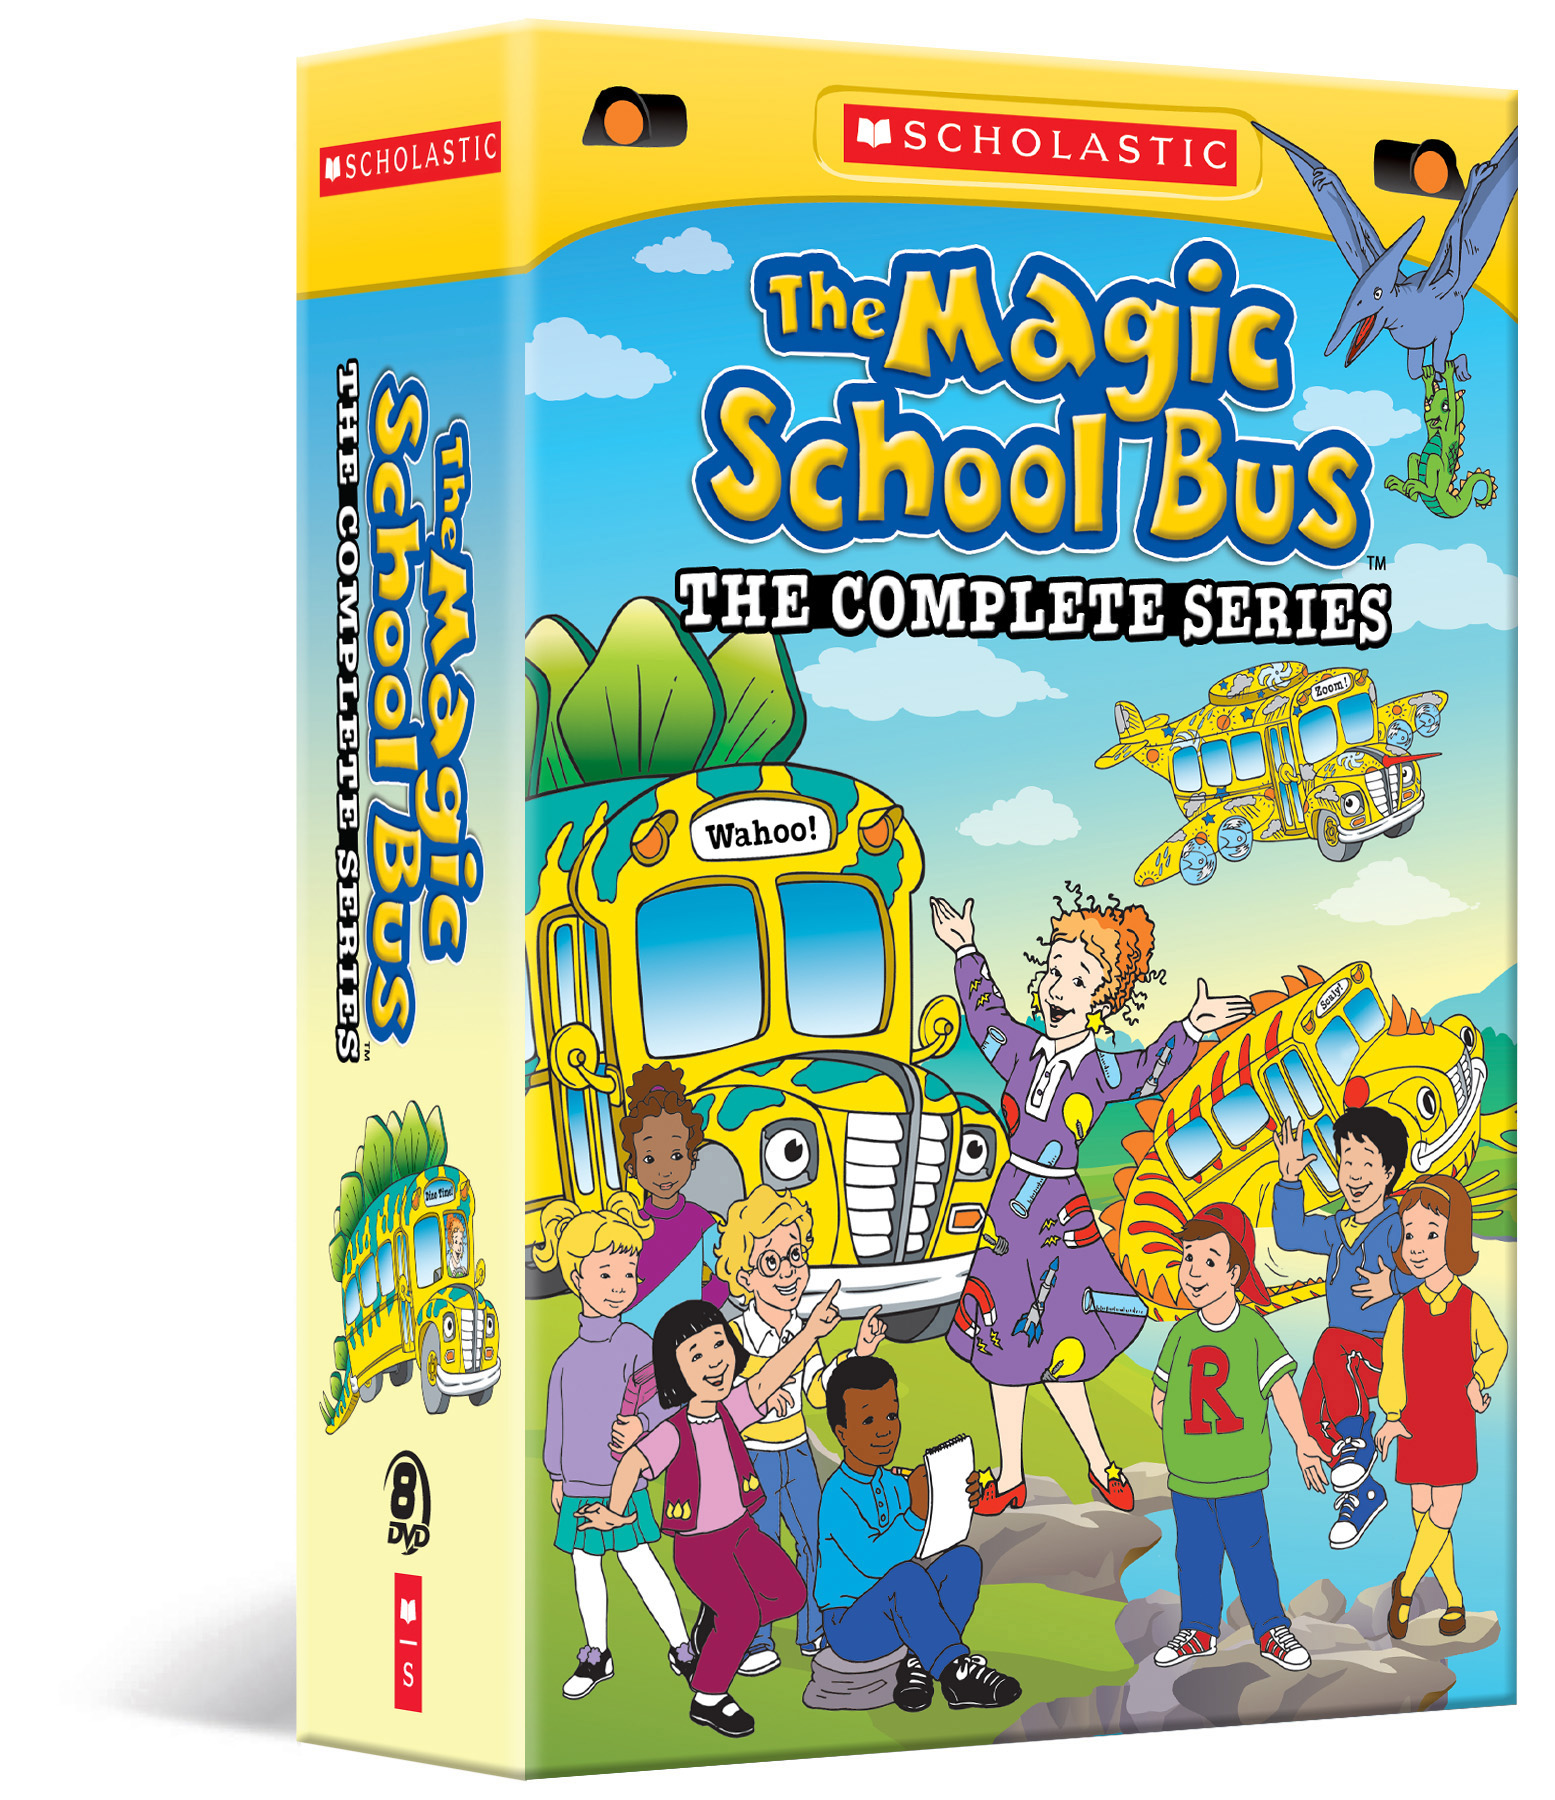 25 Years Of The Magic School Bus In A New Dvd Set